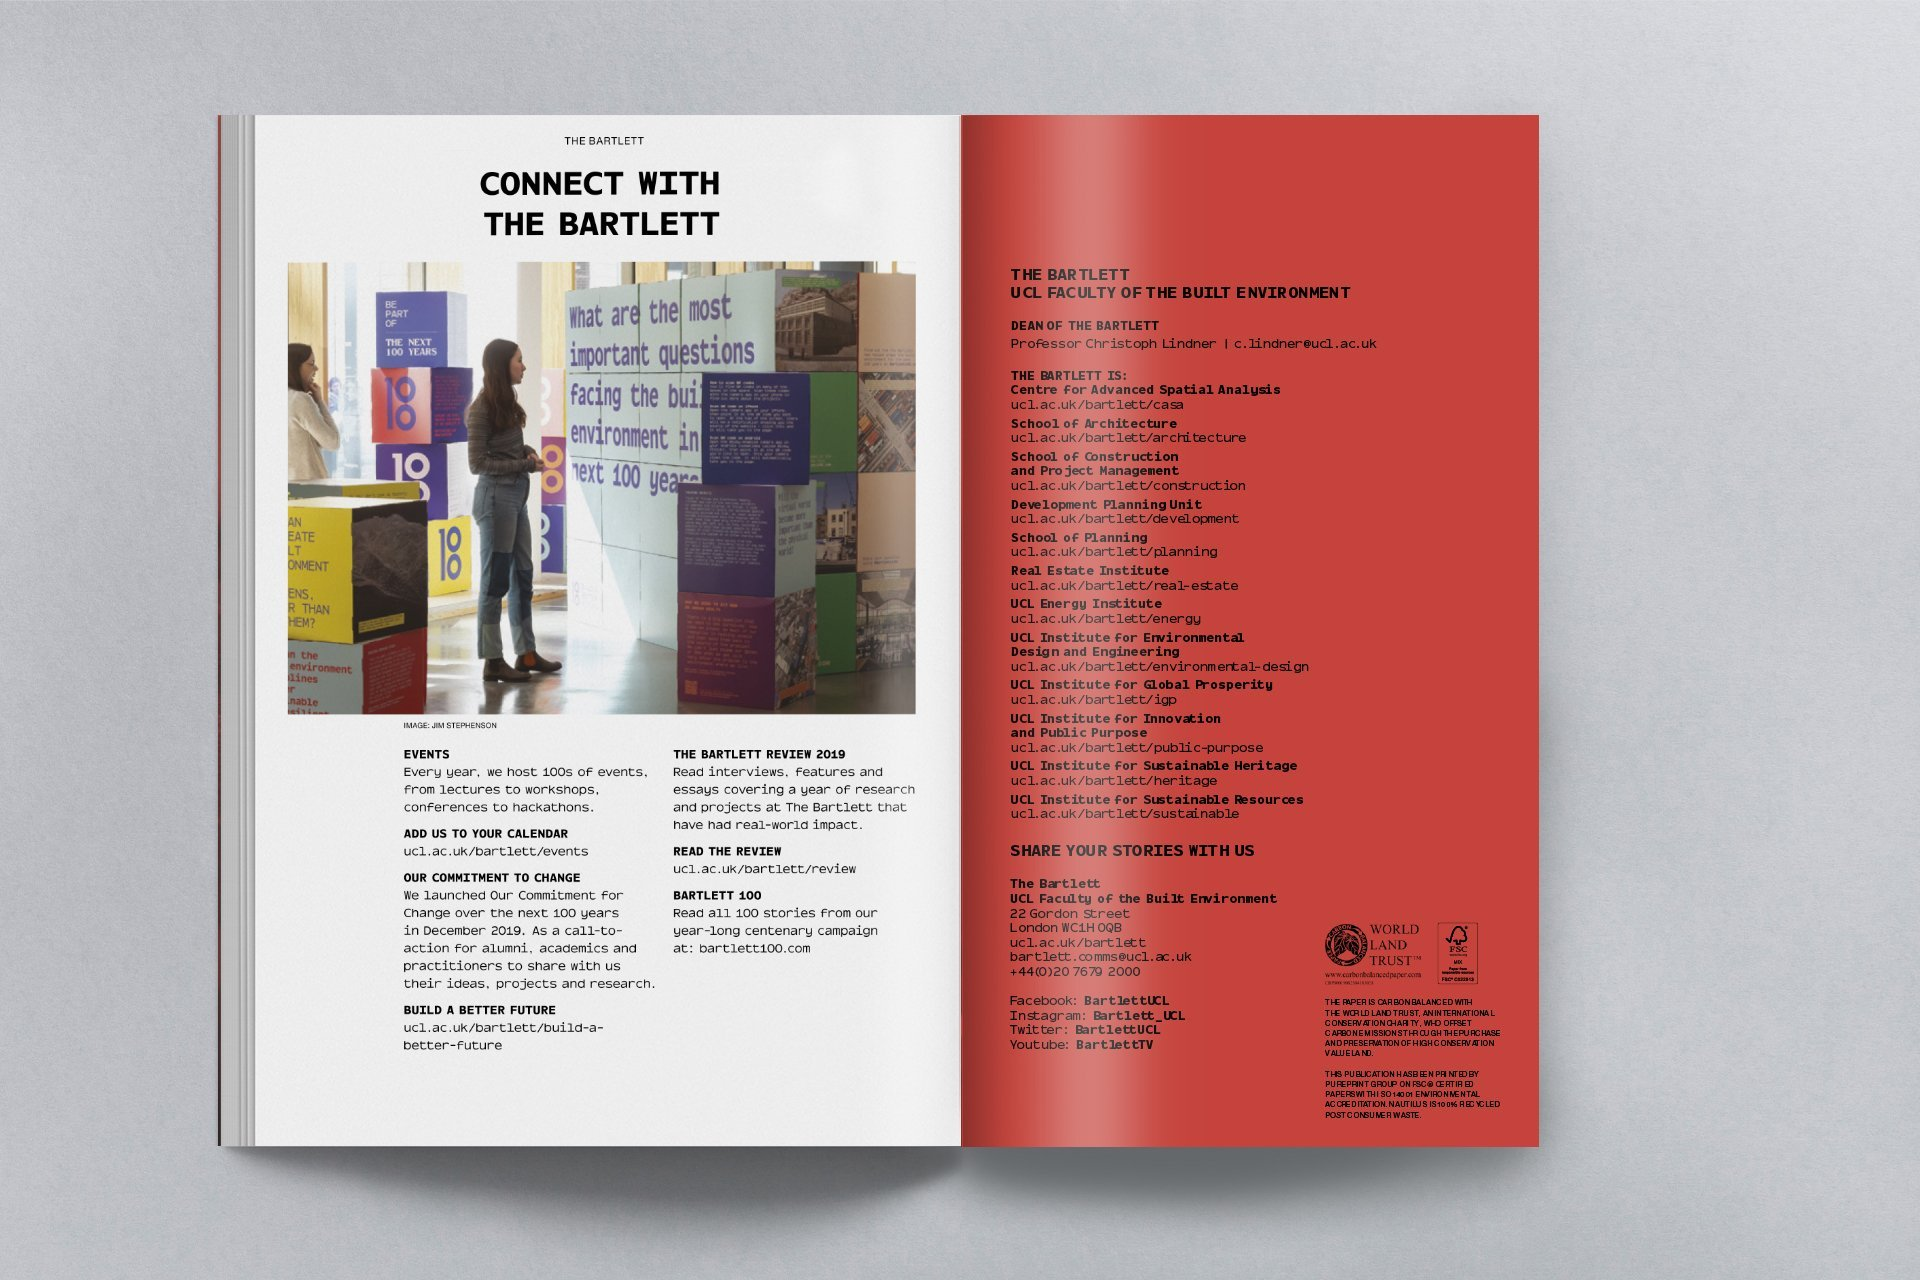 The Bartlett Alumni magazine 10